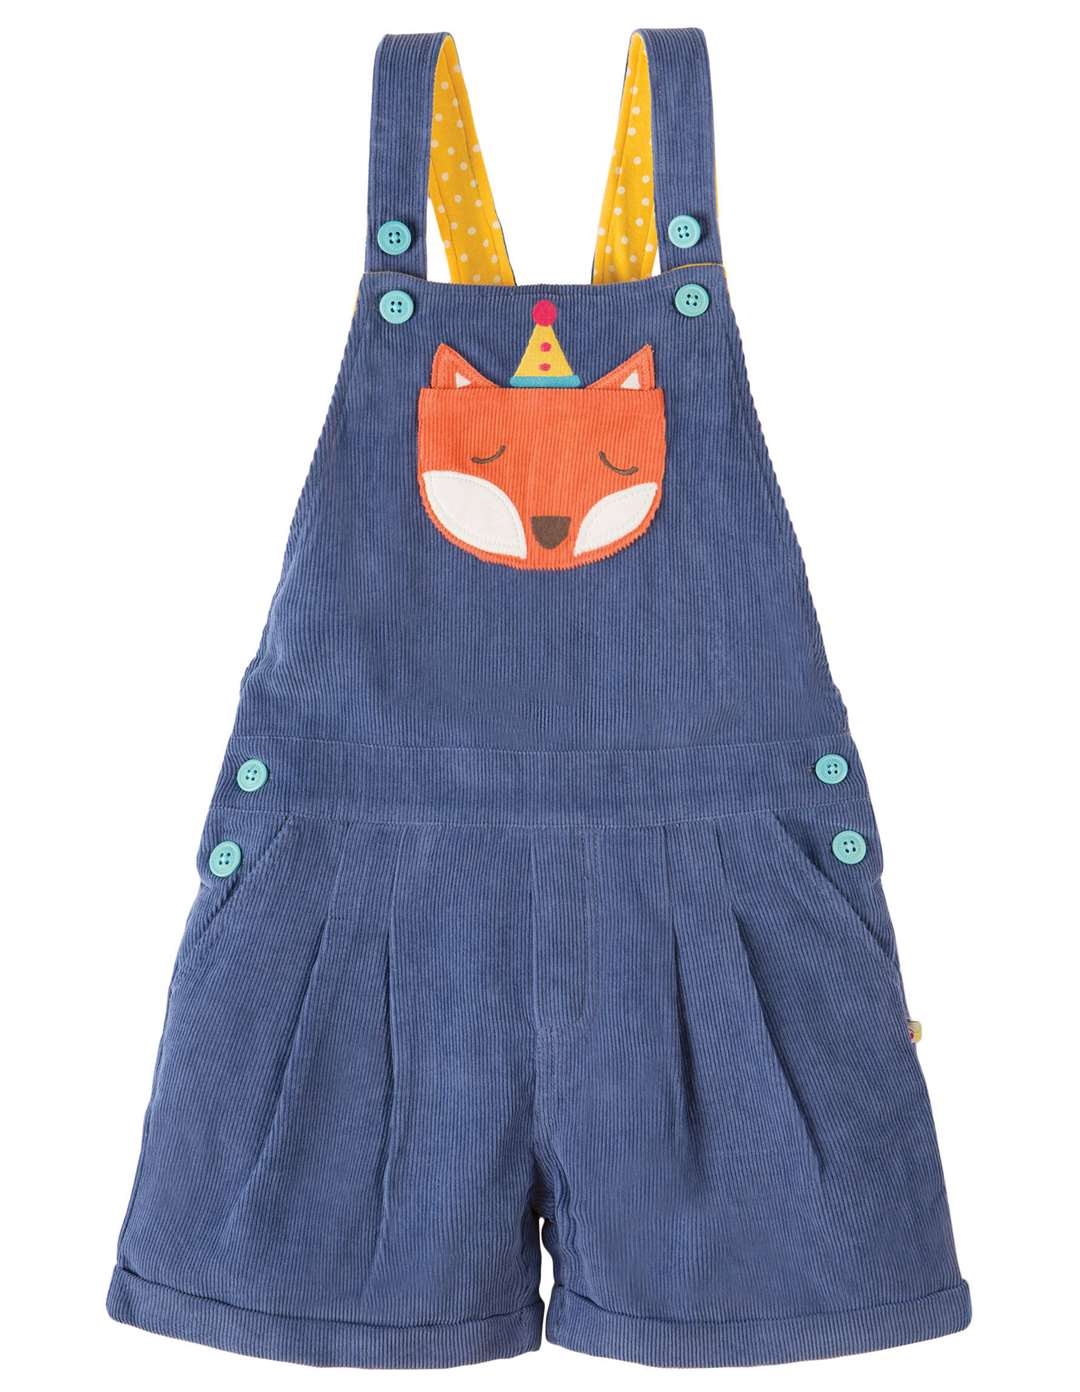 A foxy little number - dungarees from Frugi